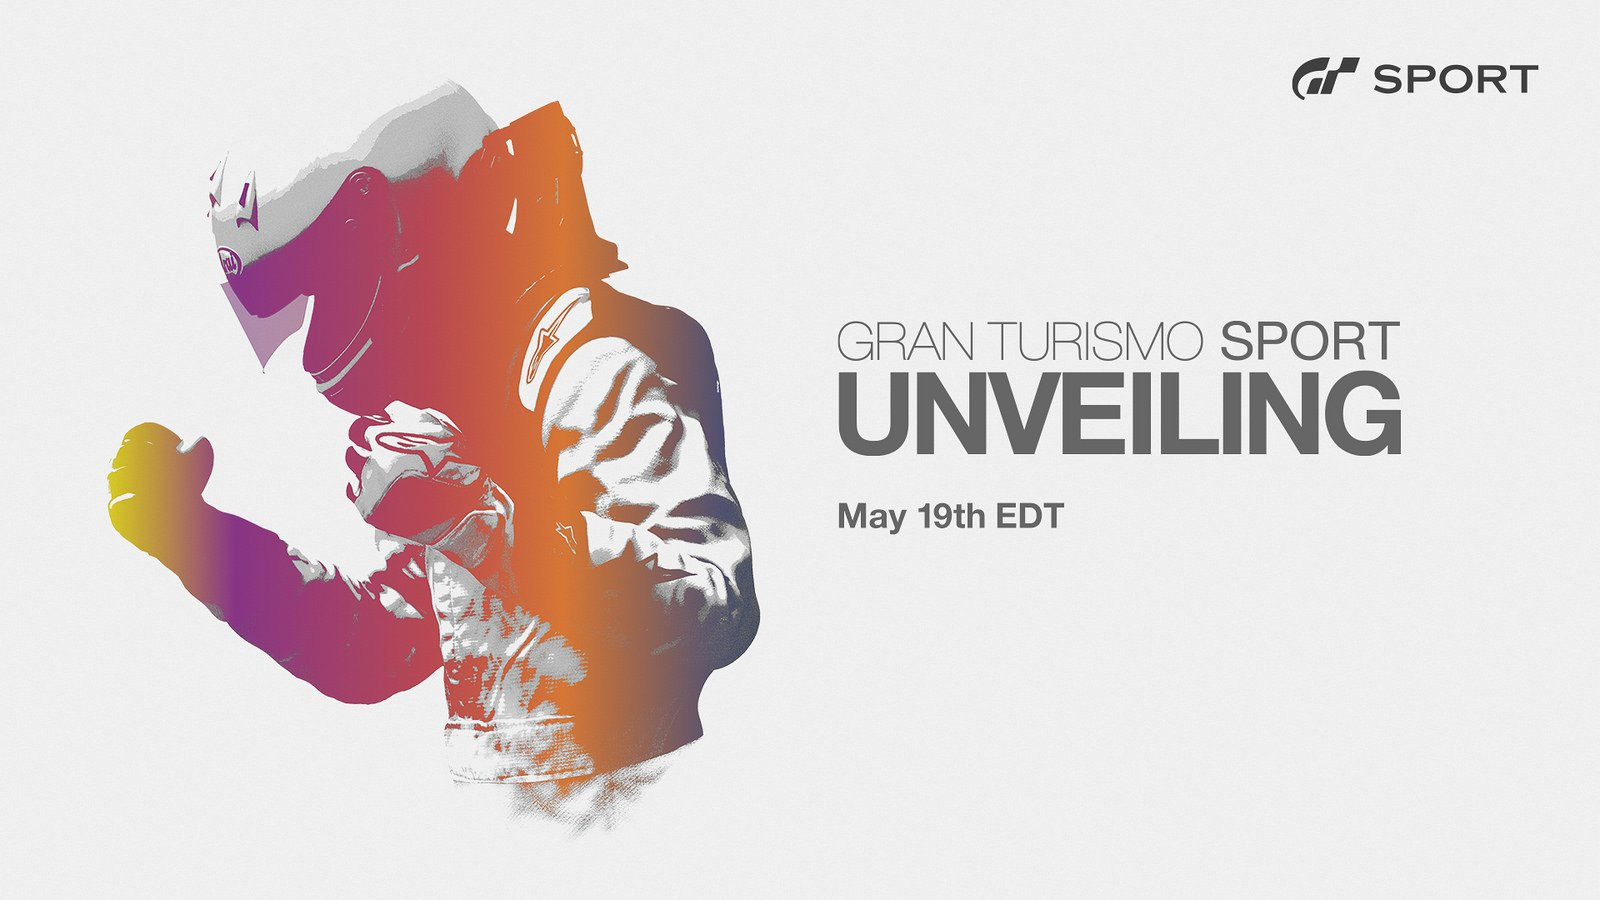 New Gran Turismo Sport Footage Coming Soon